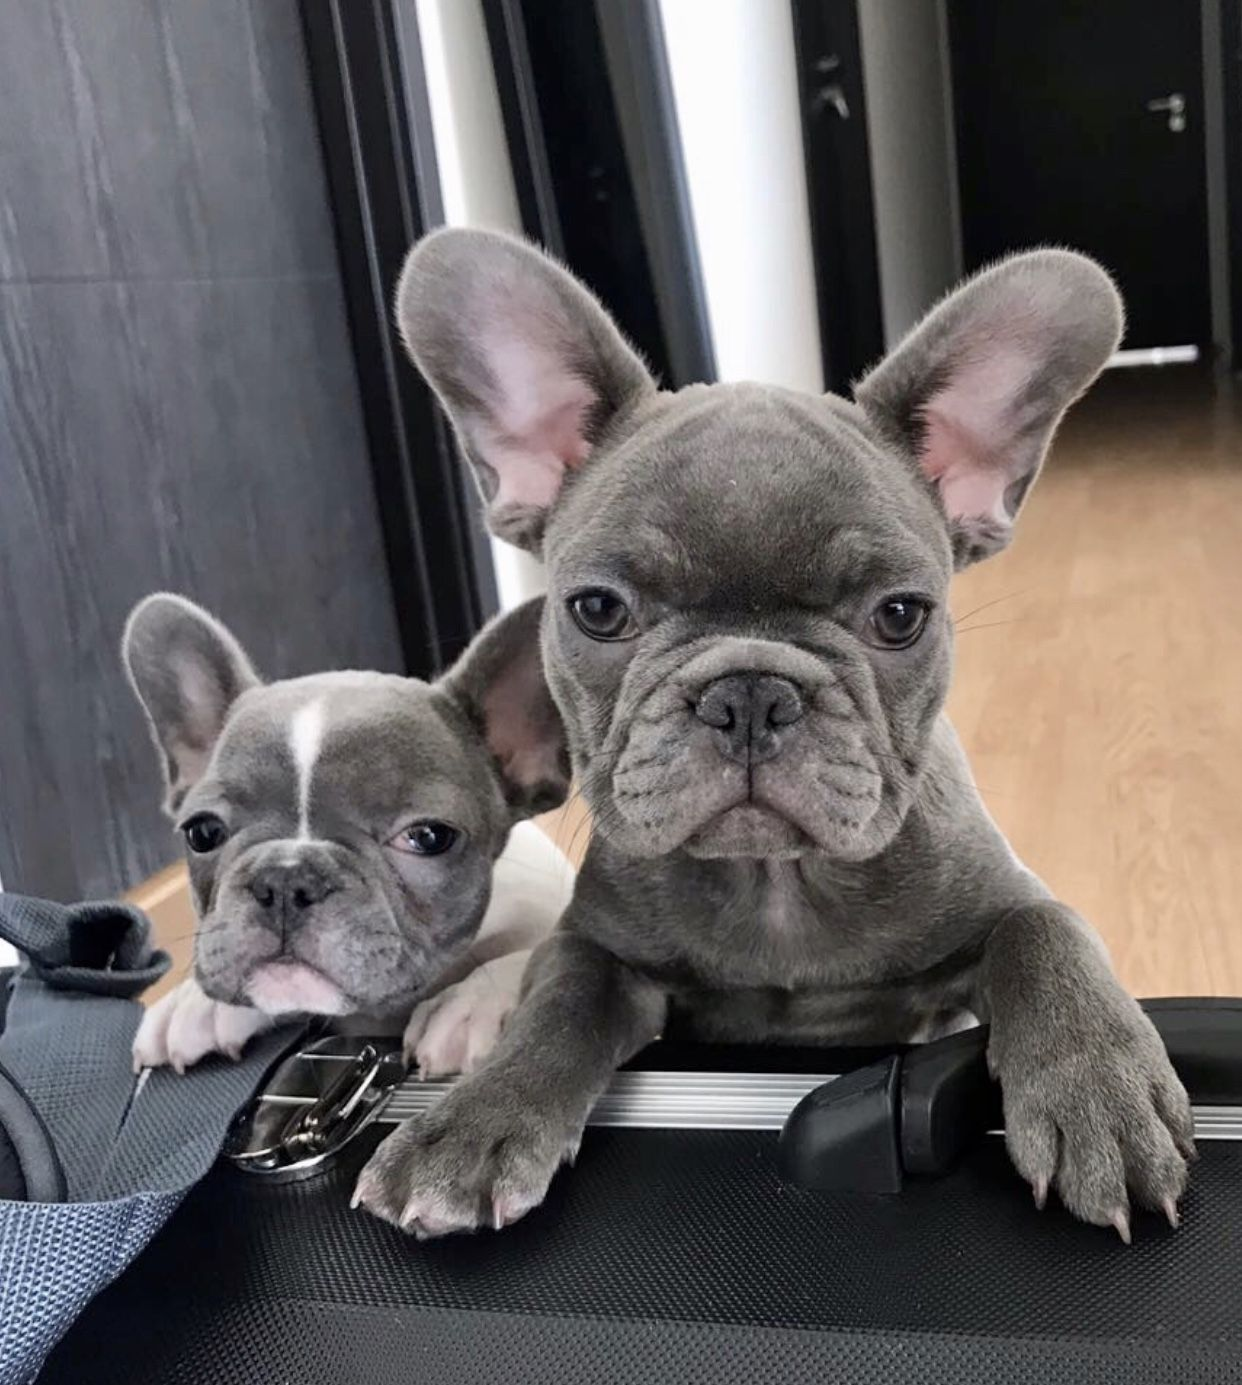 These Two Cuties Enjoying Their New Family Www Poeticfrenchbulldogs Com French Bulld Blue French Bulldog Puppies French Bulldog Puppies Bulldog Puppies